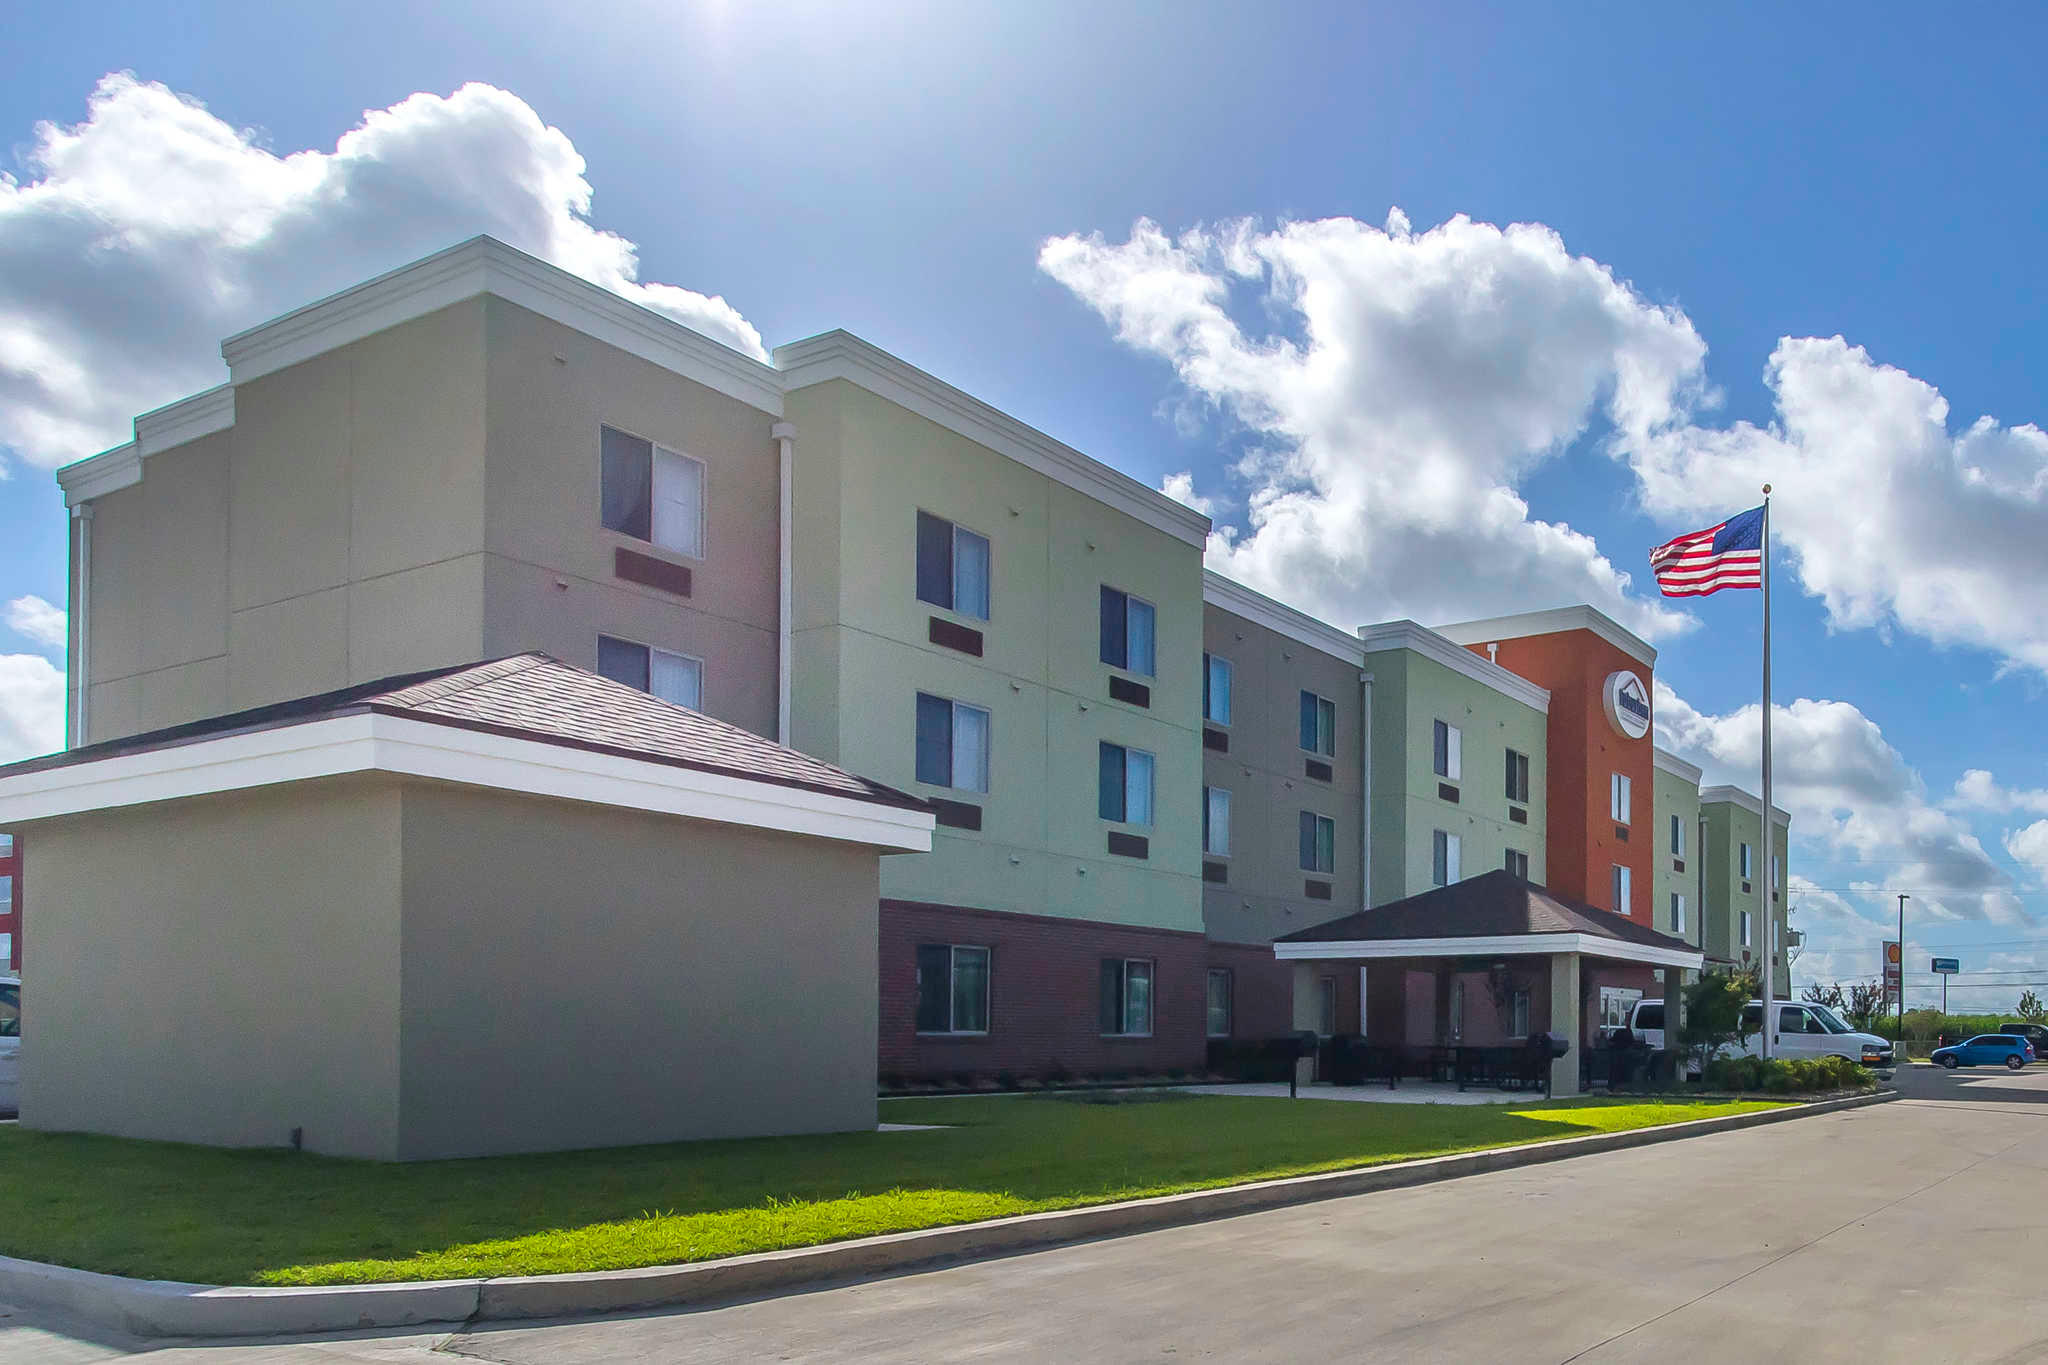 Extended stay discounts coupons